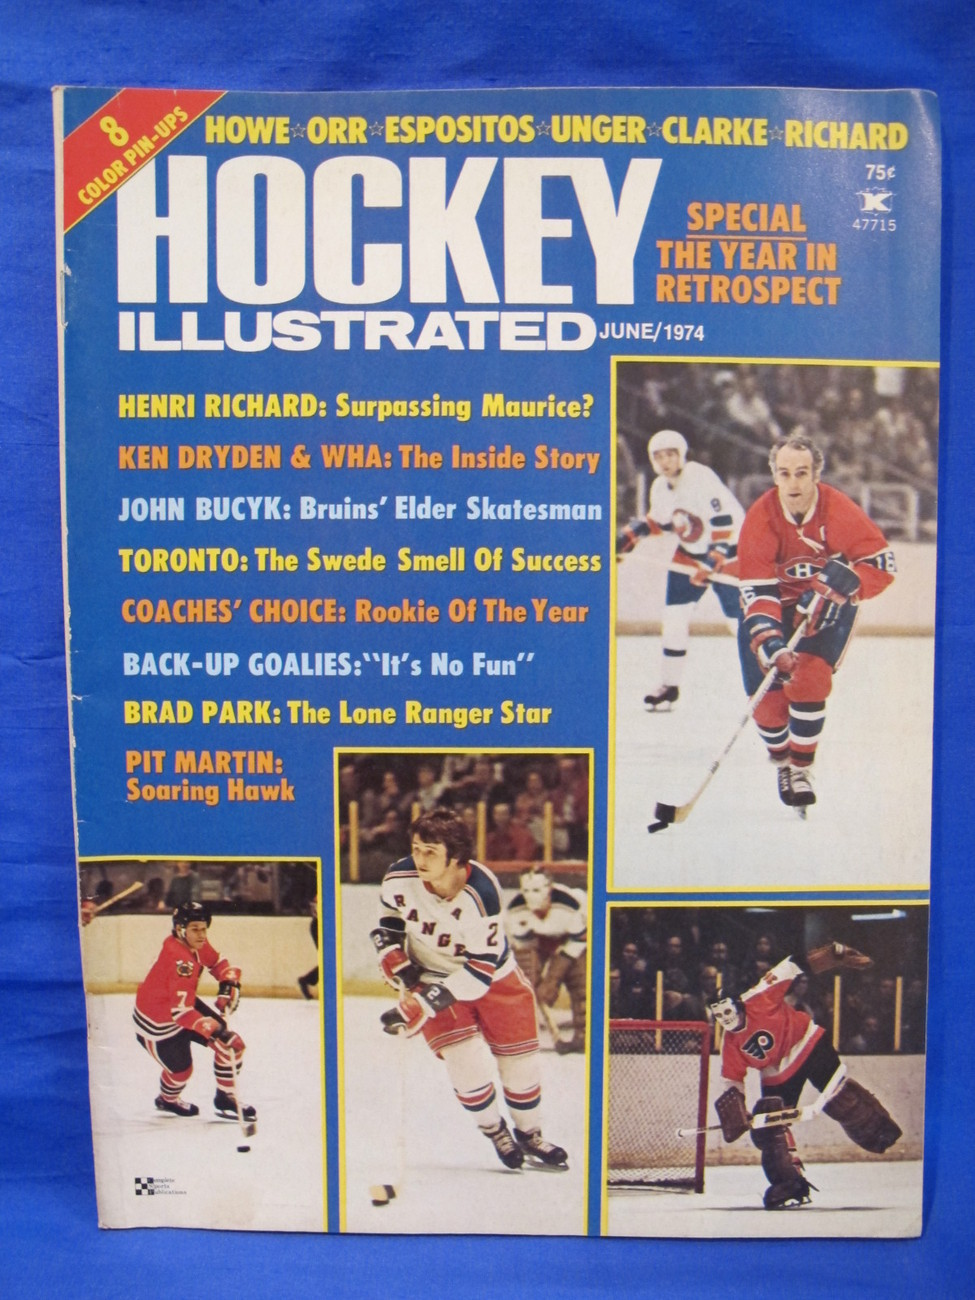 Hockey Illustrated Magazine Vintage Collector Howe Orr Espositos Unger Richard